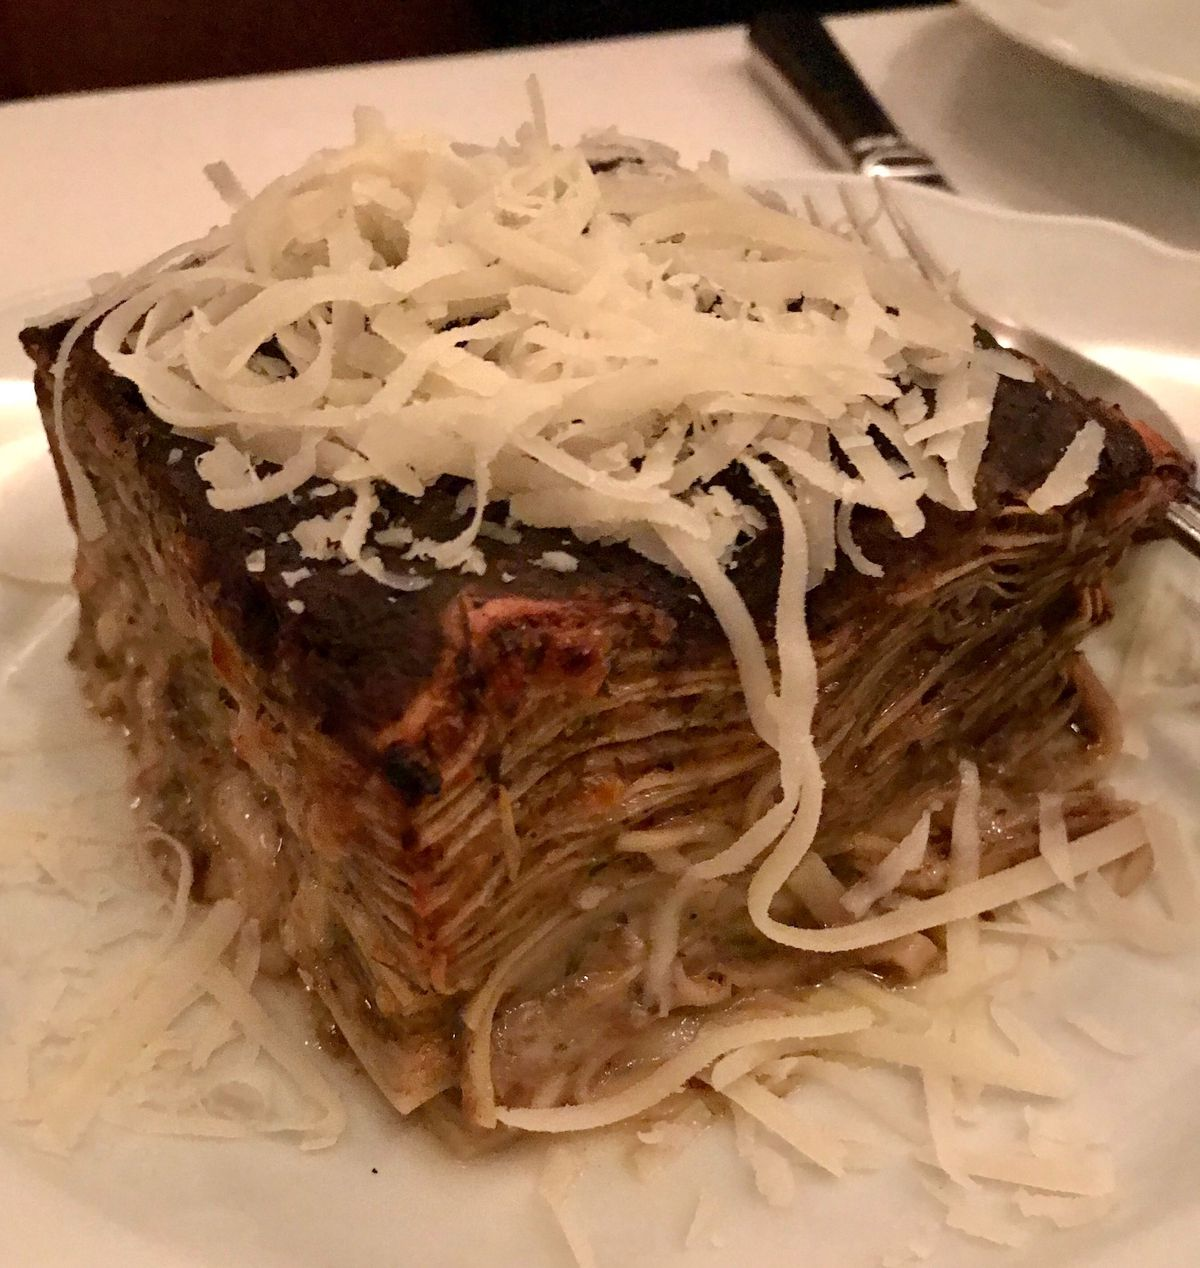 Multi-layered lasagna topped with cheese